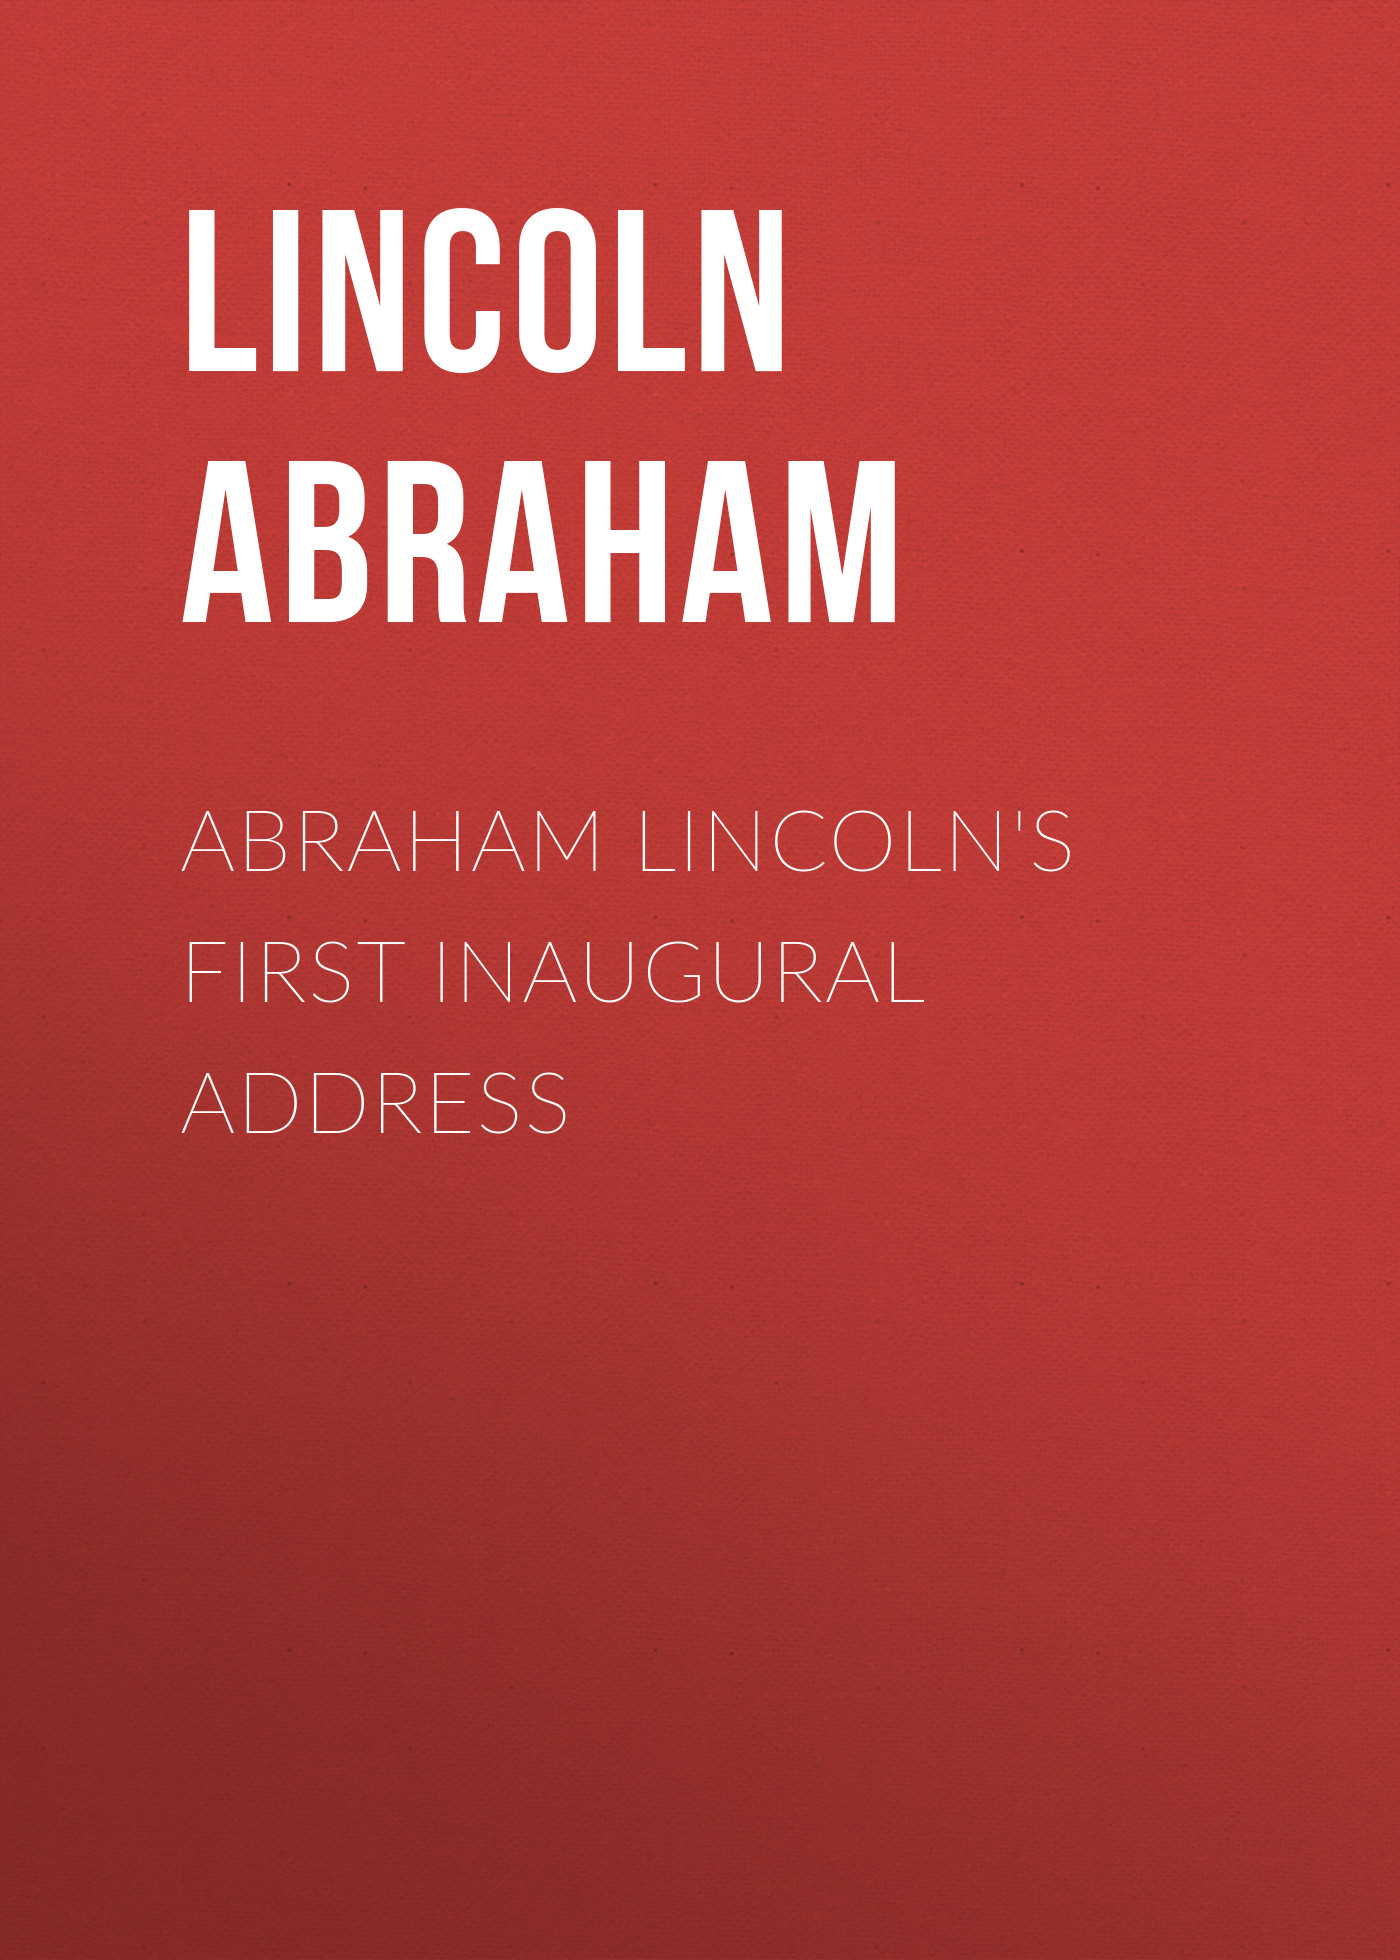 Lincoln Abraham Abraham Lincoln's First Inaugural Address i am abraham lincoln learning